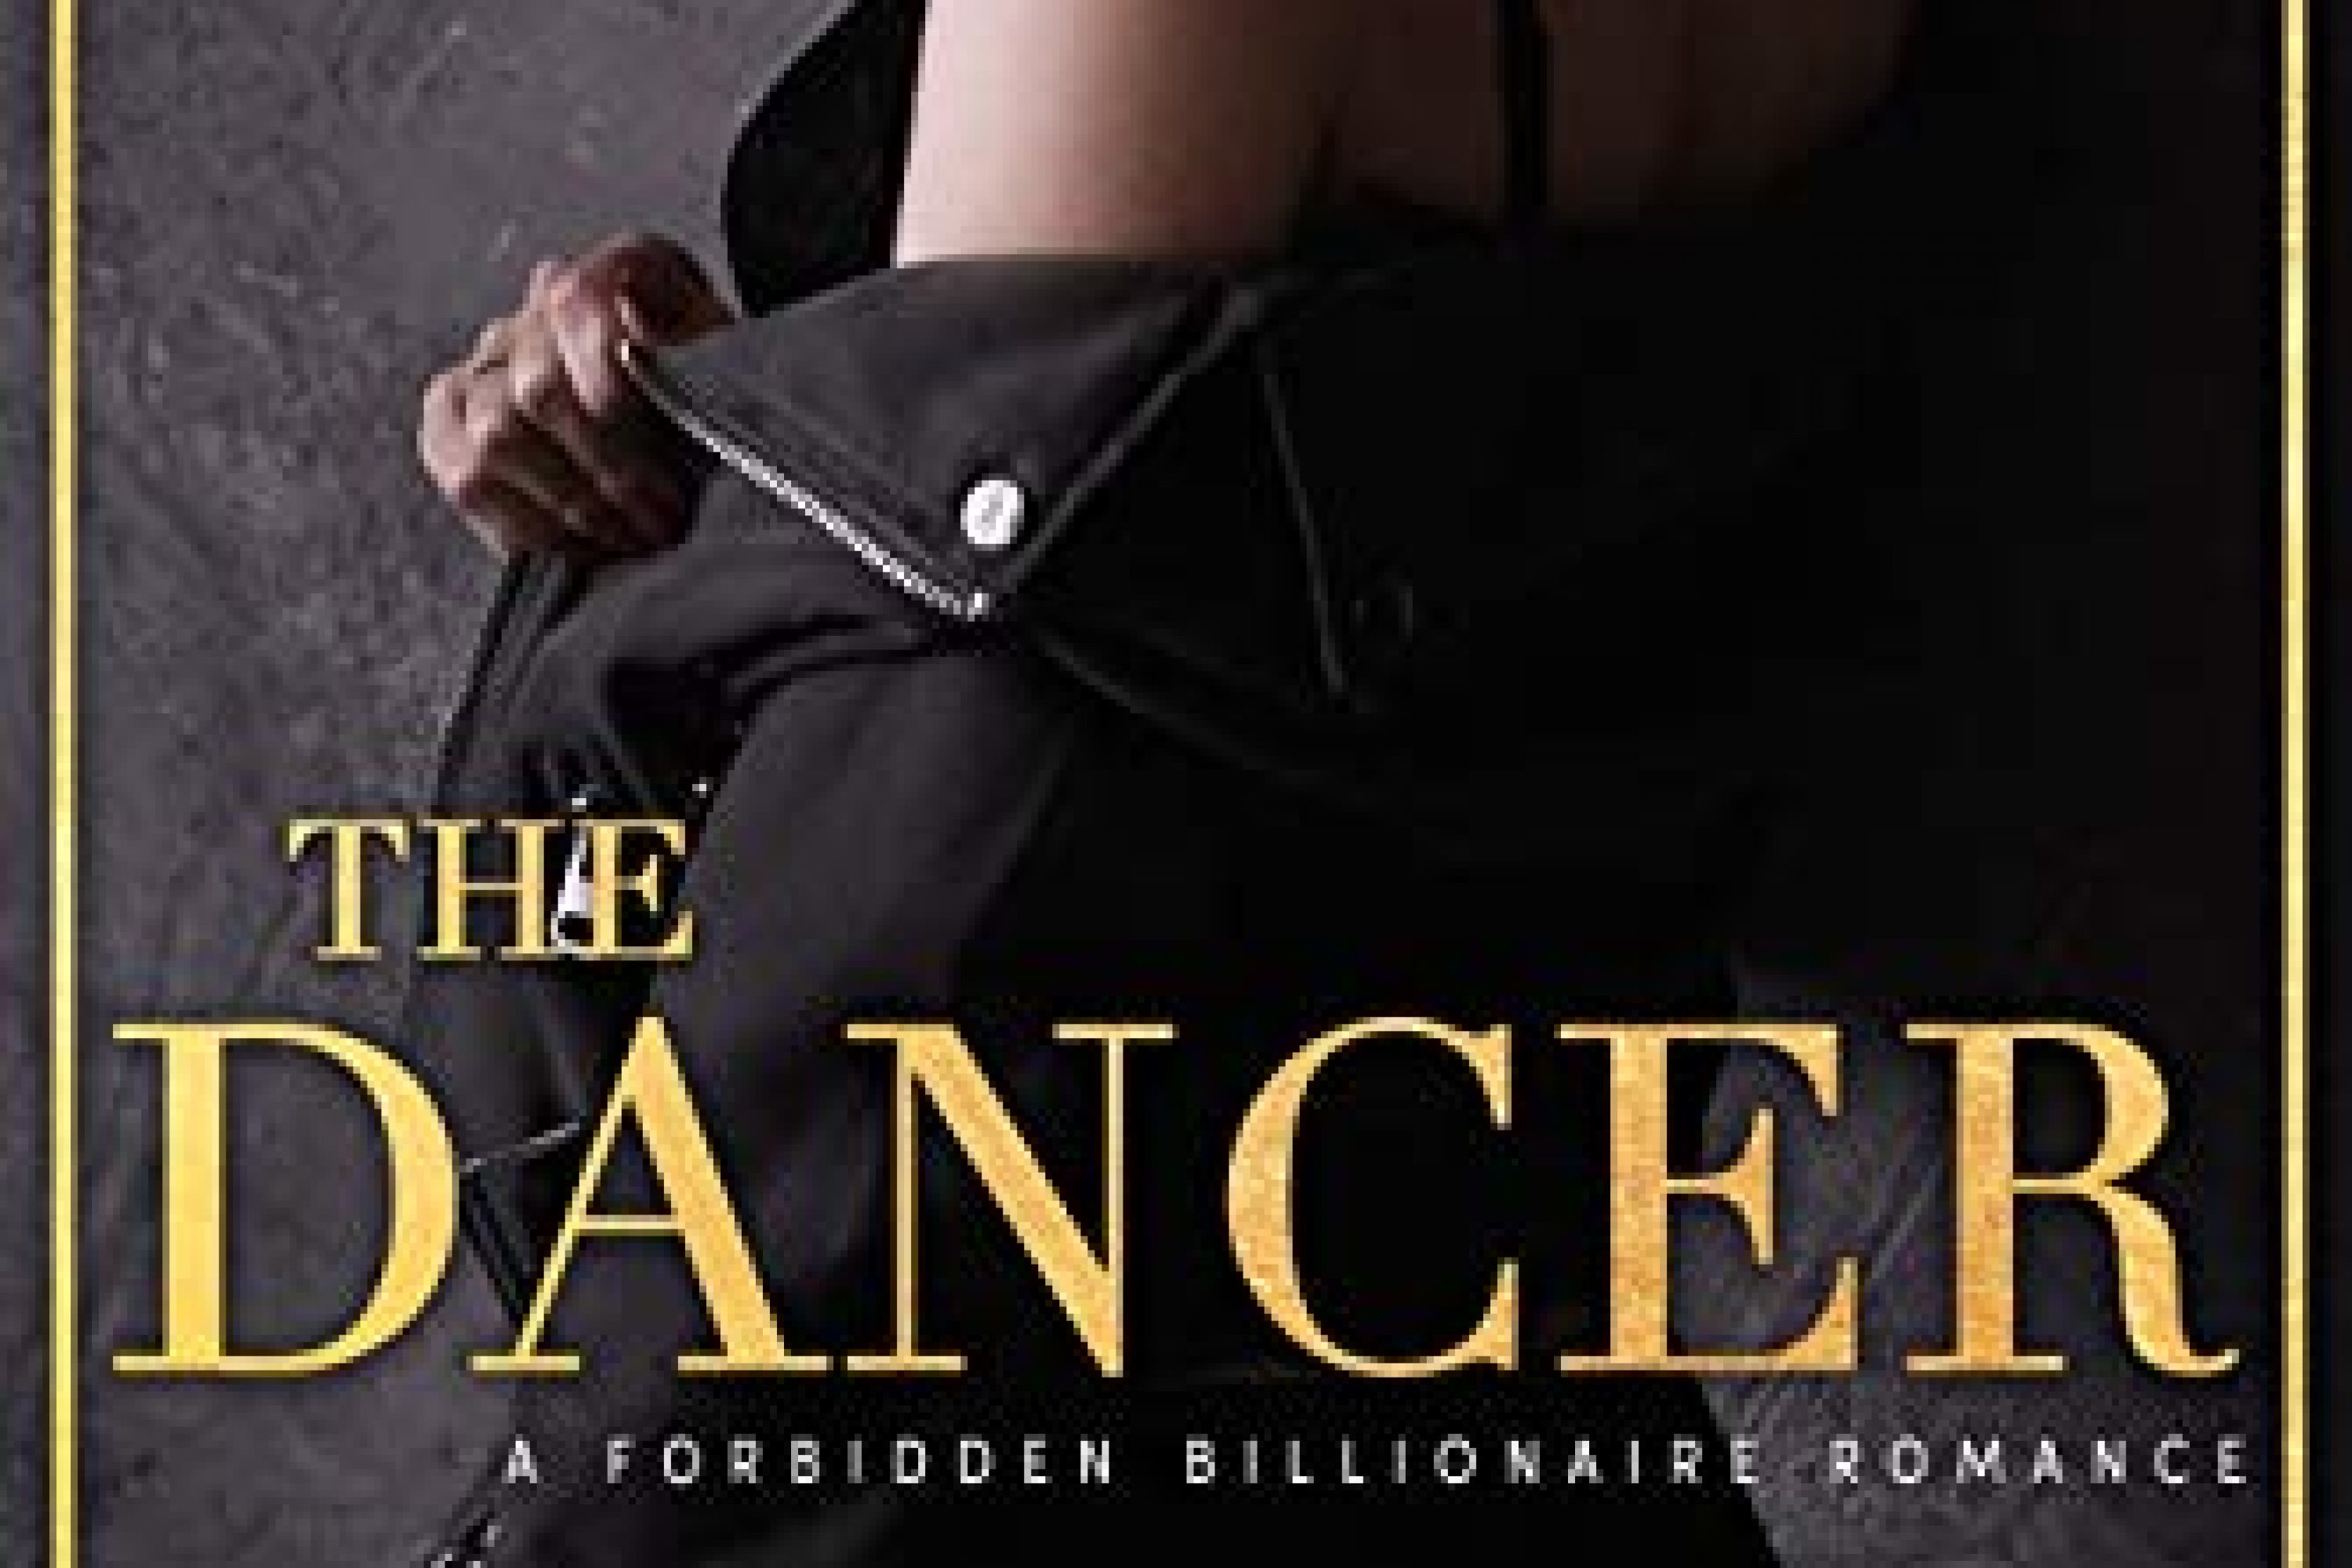 Review: The Dancer by Vivian Wood